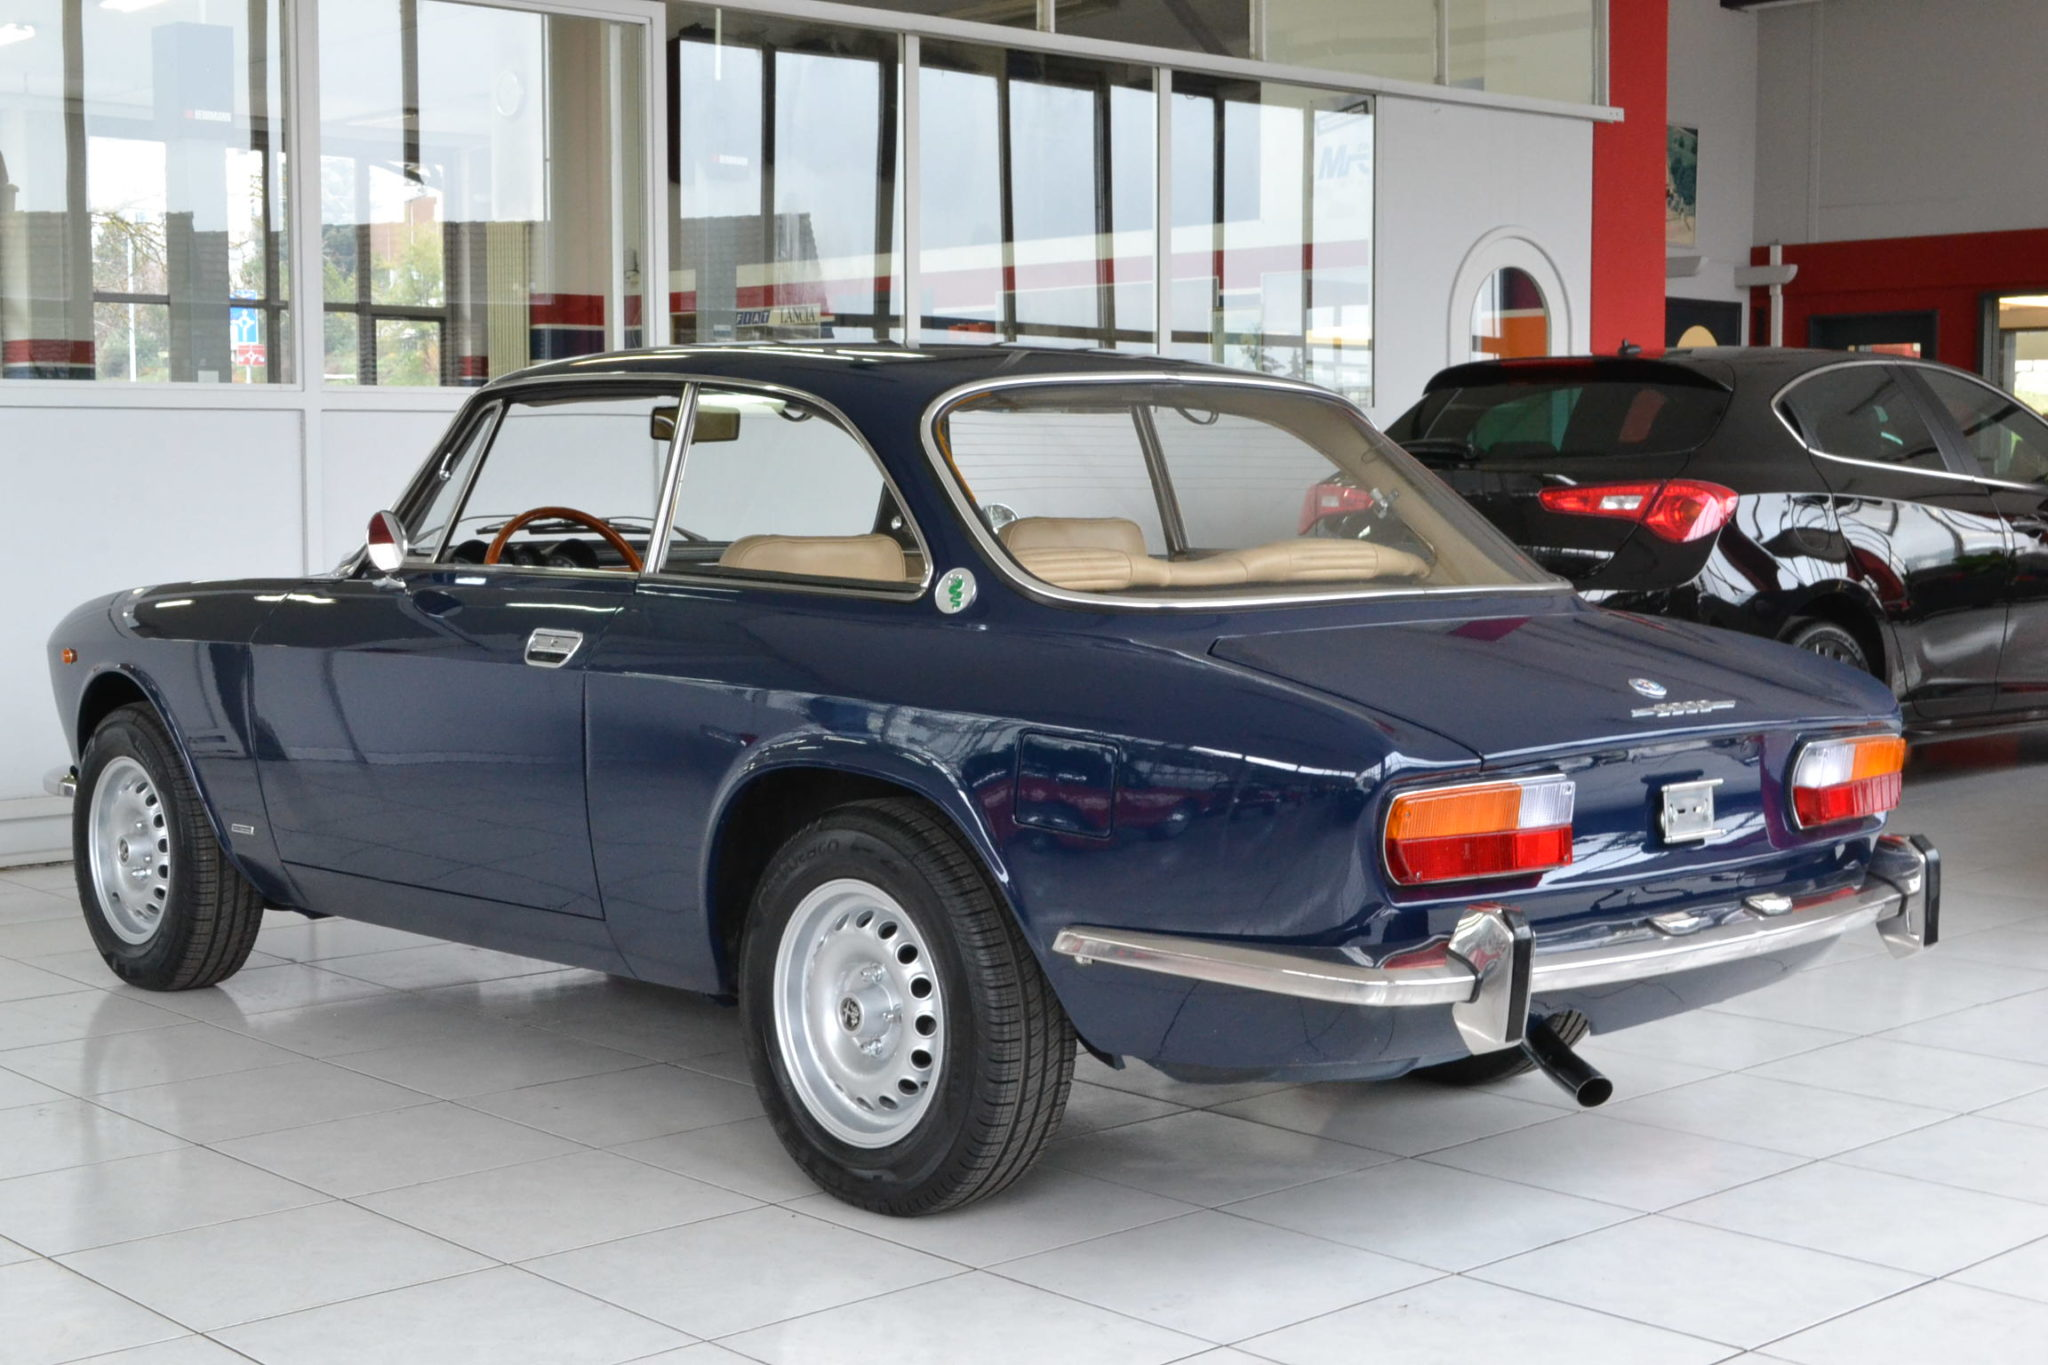 Scudetto Veloce MY 2016  7949 furthermore Alfa Romeo Gt 2000 Veloce Blu Olandese furthermore Imgview likewise Alfa romeo Giulietta as well 61 Alfa Romeo Giulietta Spider black 10. on alfa romeo spider veloce